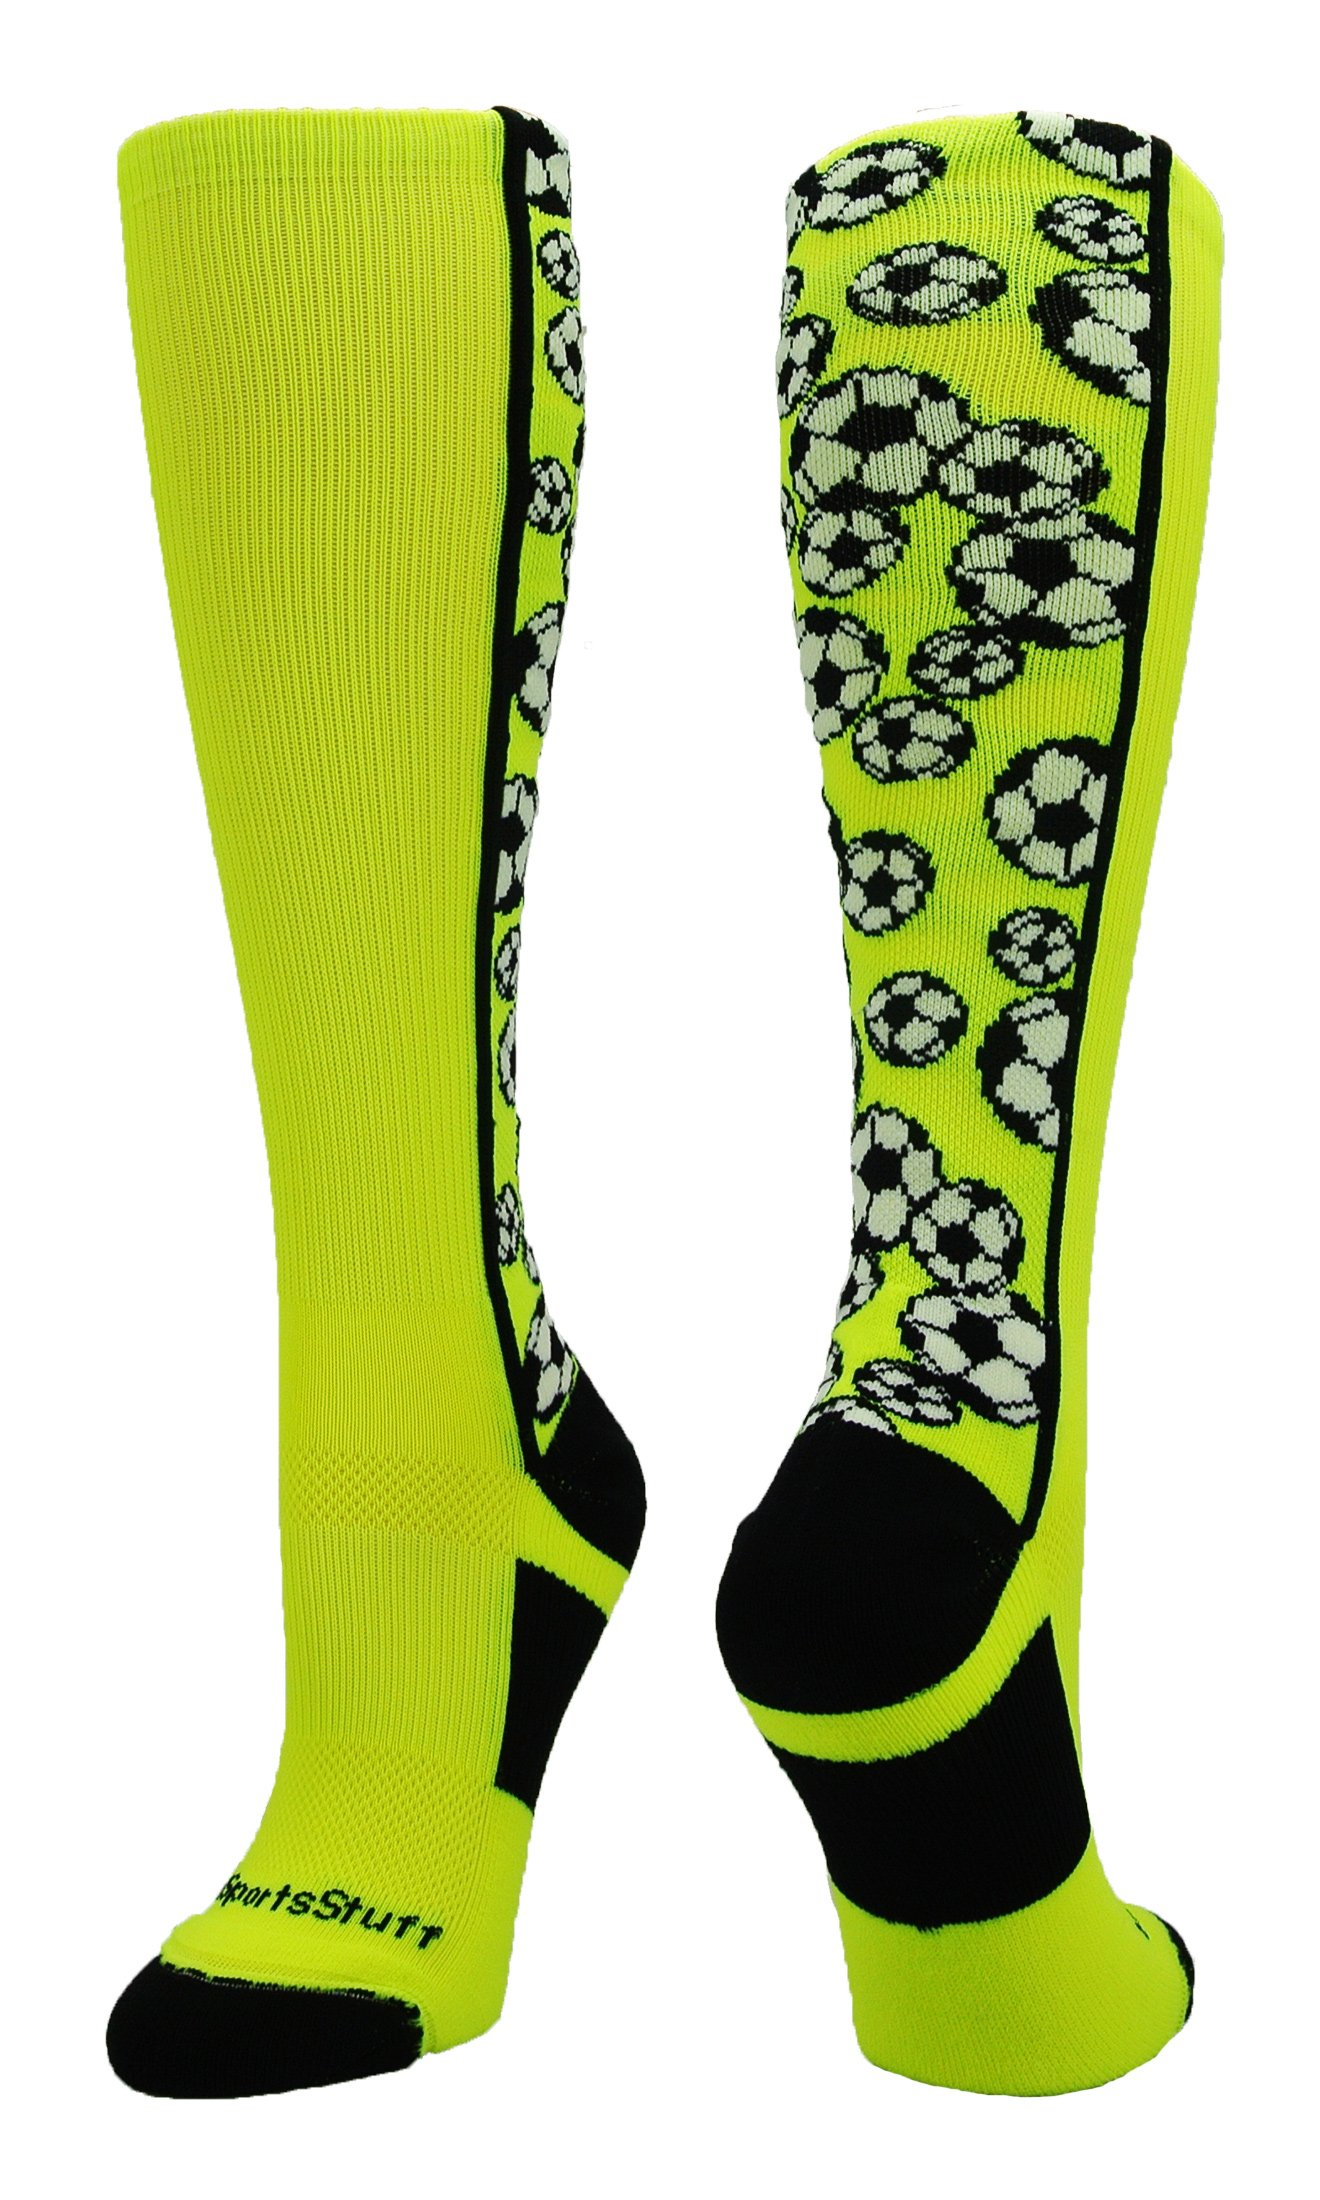 MadSportsStuff Crazy Soccer Socks with Soccer Balls Over The Calf (Neon Yellow/Black, Small) by MadSportsStuff